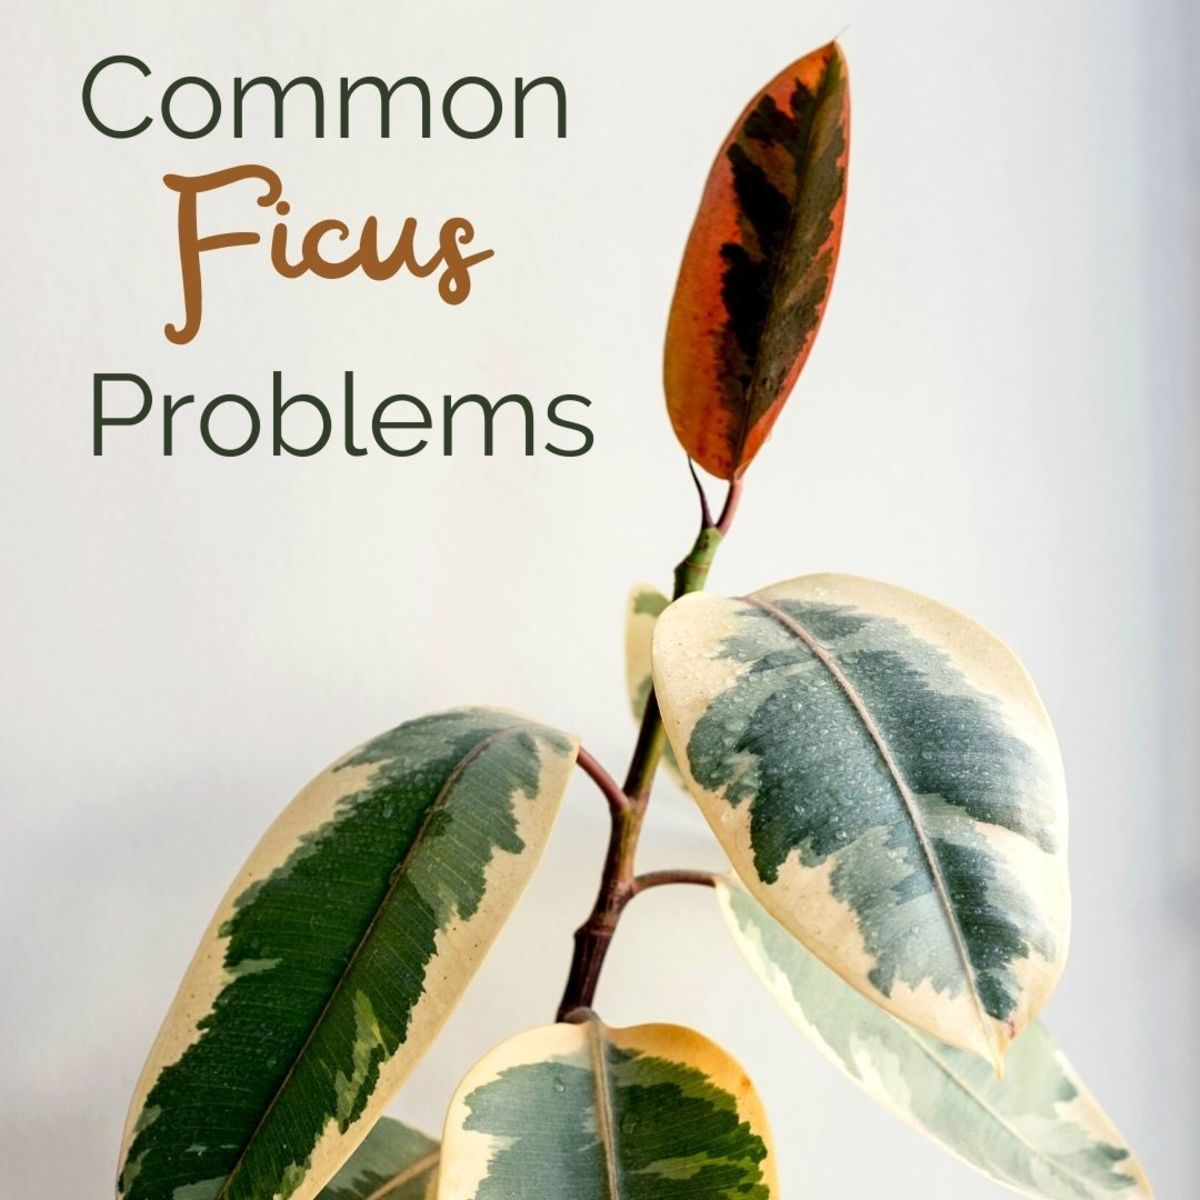 Common Ficus Tree Problems and How to Solve Them